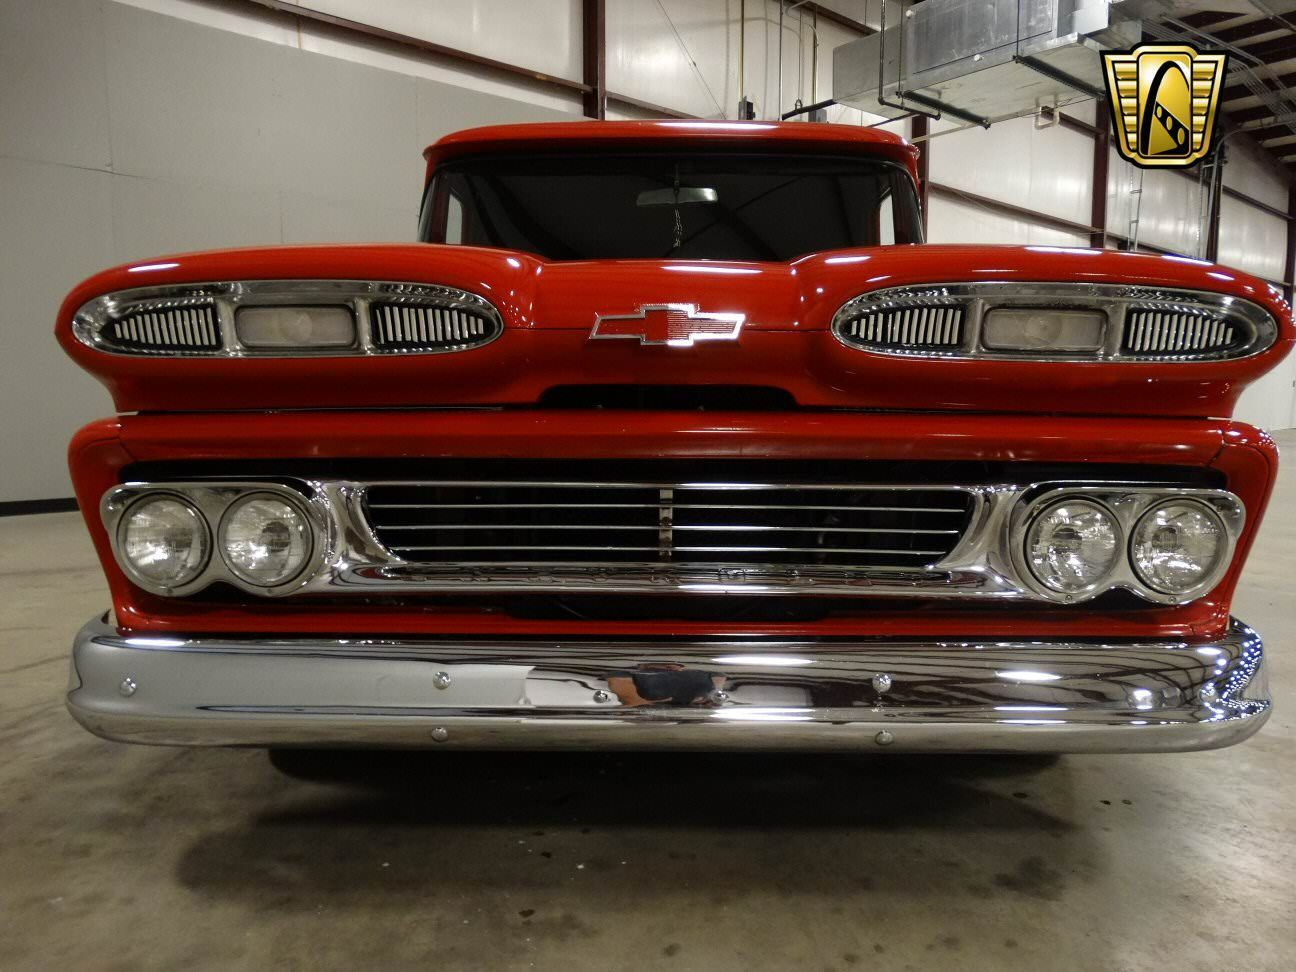 chevy c10 stepside cool classic pickups vans u0026 such pinterest cars classic trucks and chevrolet